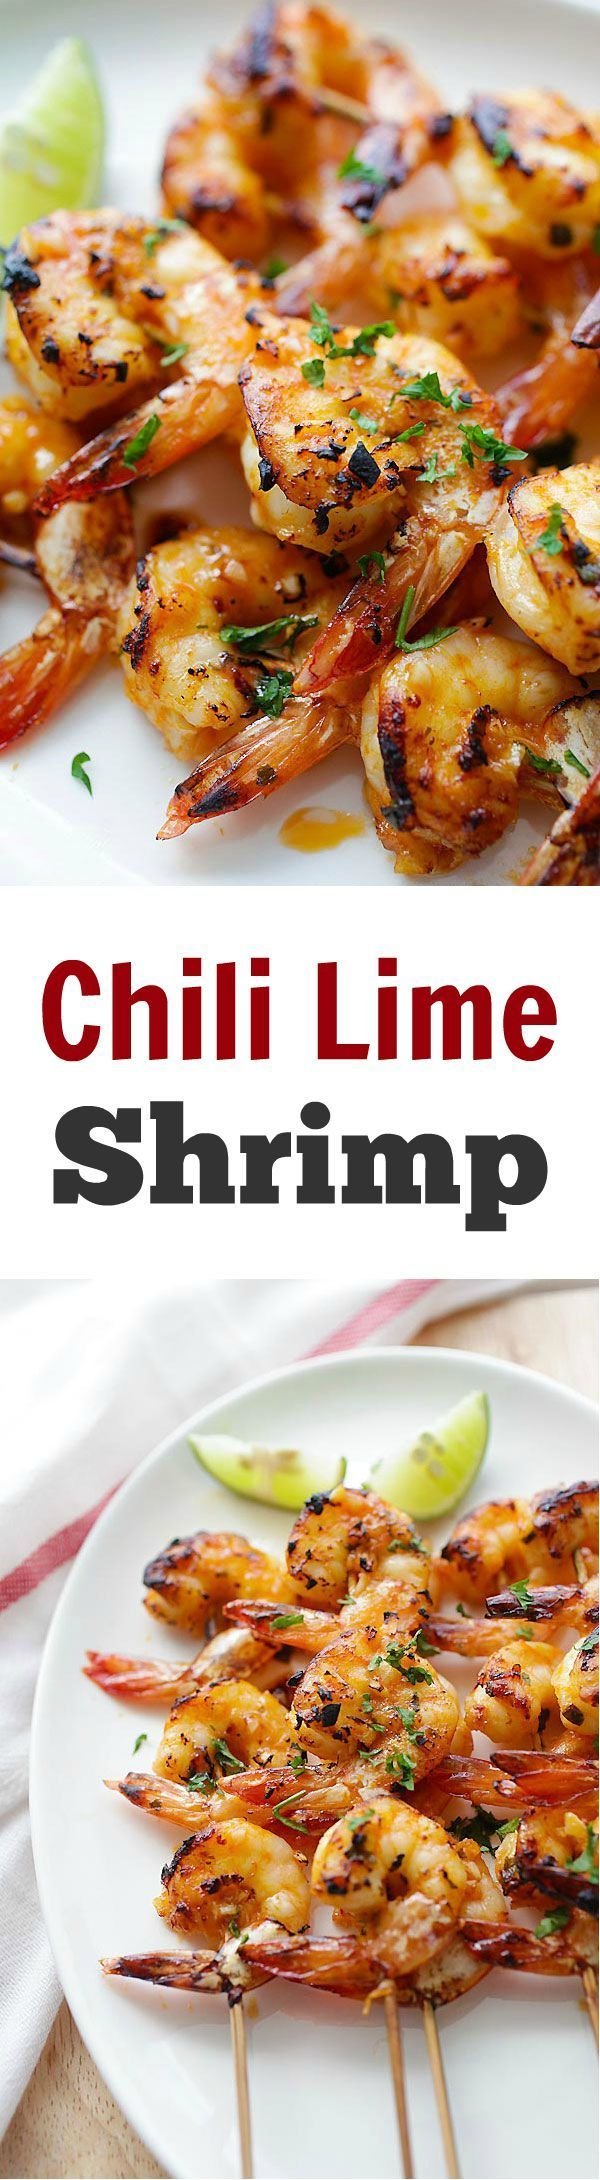 Chili Lime Shrimp – Juicy and succulent shrimp marinated with chili and lime and grill/baked to perfection. So good and so easy!